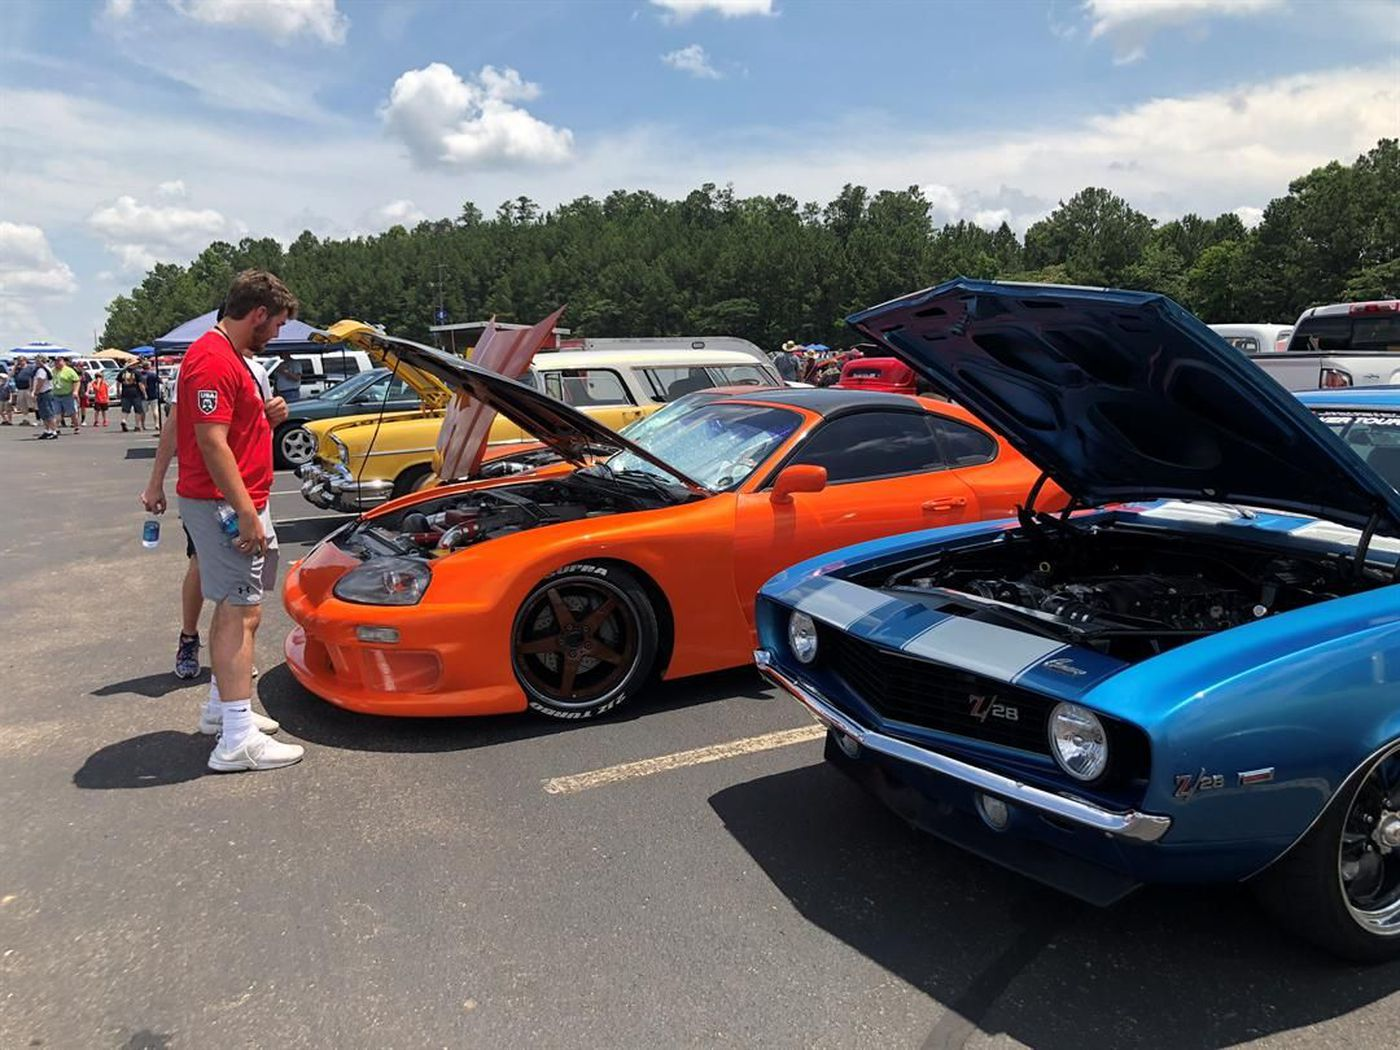 Hot Rod Power Tour Comes To Hoover